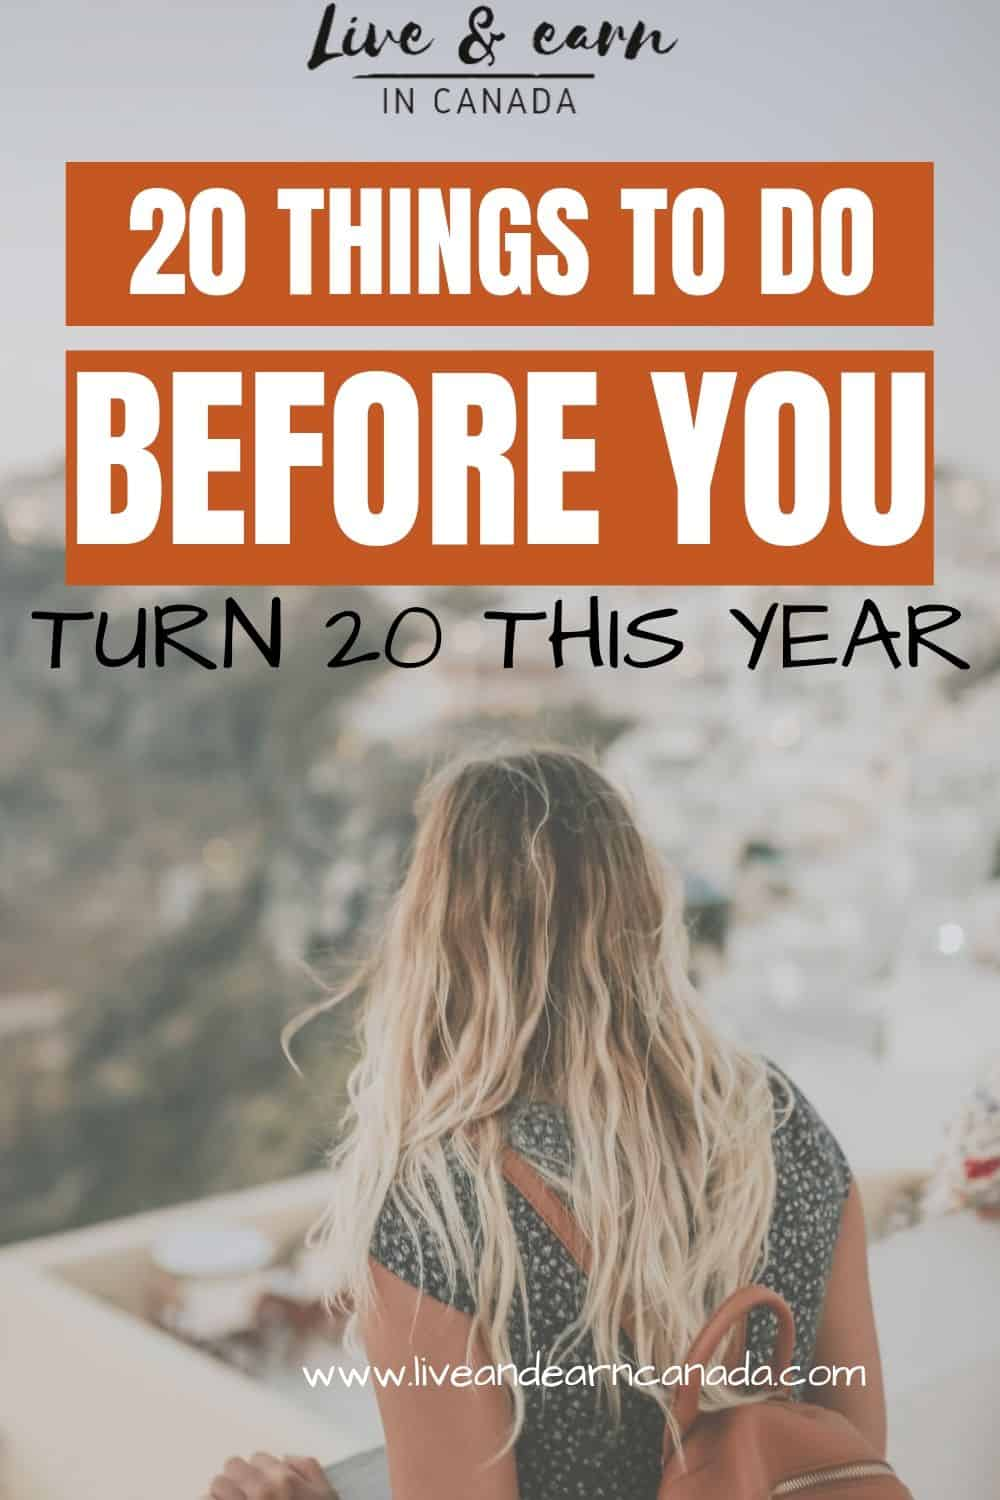 Here are a few things to do in your 20s that will not only get you through but allow you to slay your 20s. #thingstoinyour20s #survivingyour20s #selfimprovement #thingstodobefore30 Here is what you need to do before you turn 20!